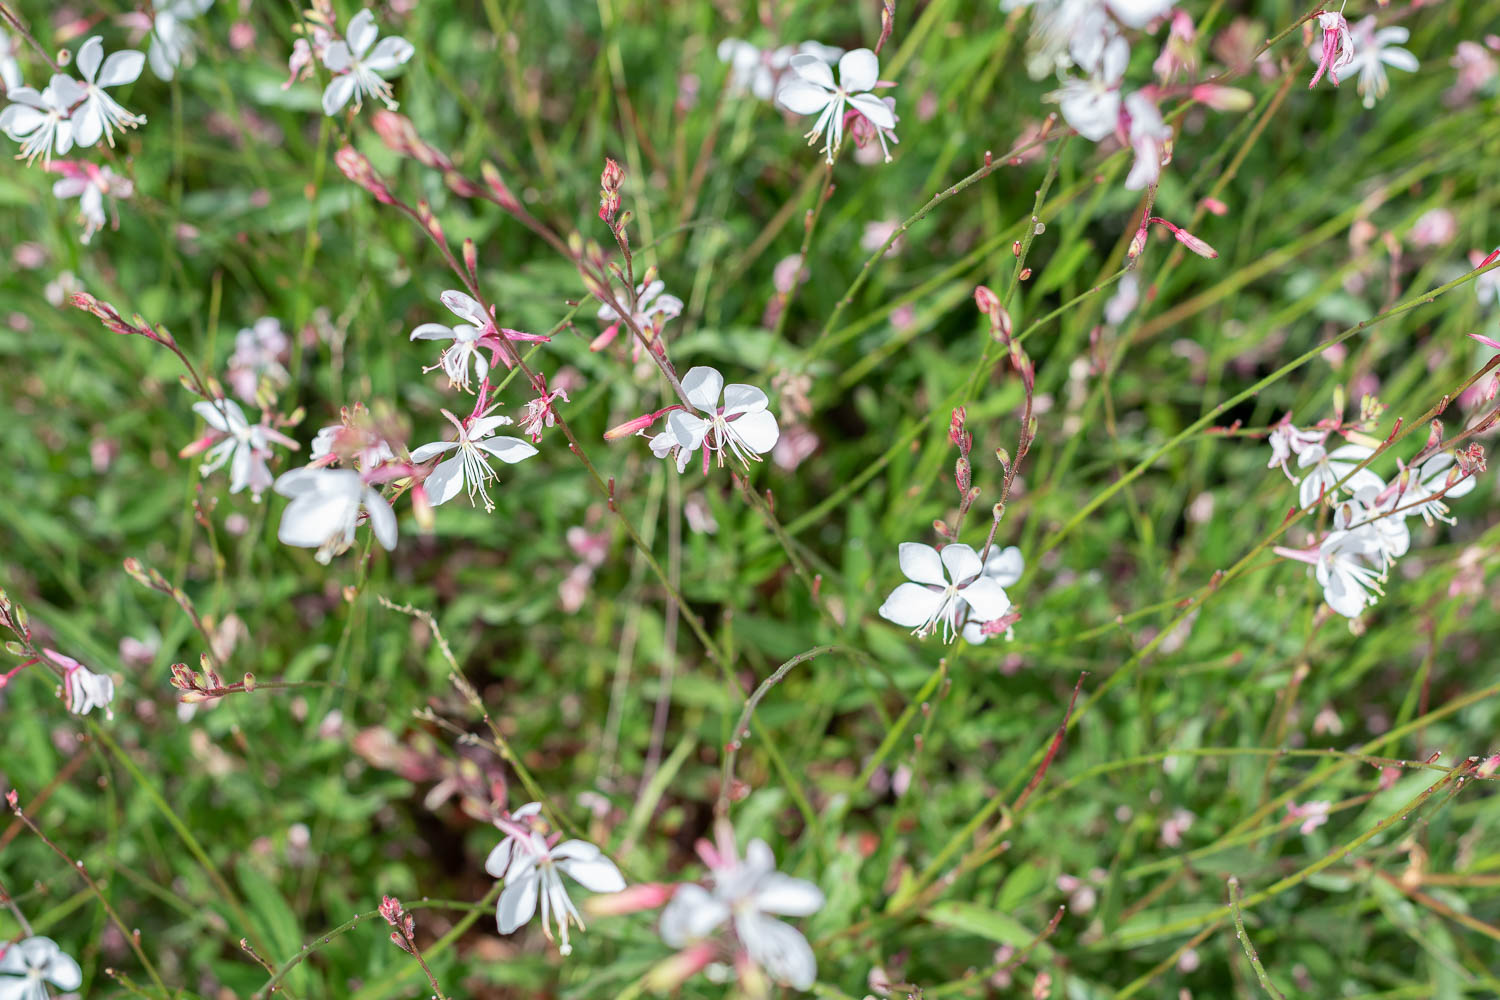 Guara - This dainty little spring/summer flower is absolutely adored by the bees. The body of the plant sits low to the ground, but tall thin stalks shoot up and groups of white flowers bloom. They are super wispy and pretty in the wind. I have to cut them back at the end of the season then I just wait for the new blooms the next year. We planted ours by the sidewalk so they wouldn't get blocked by the bigger plants - yet they still grow tall enough that I can see them over the other shrubs.